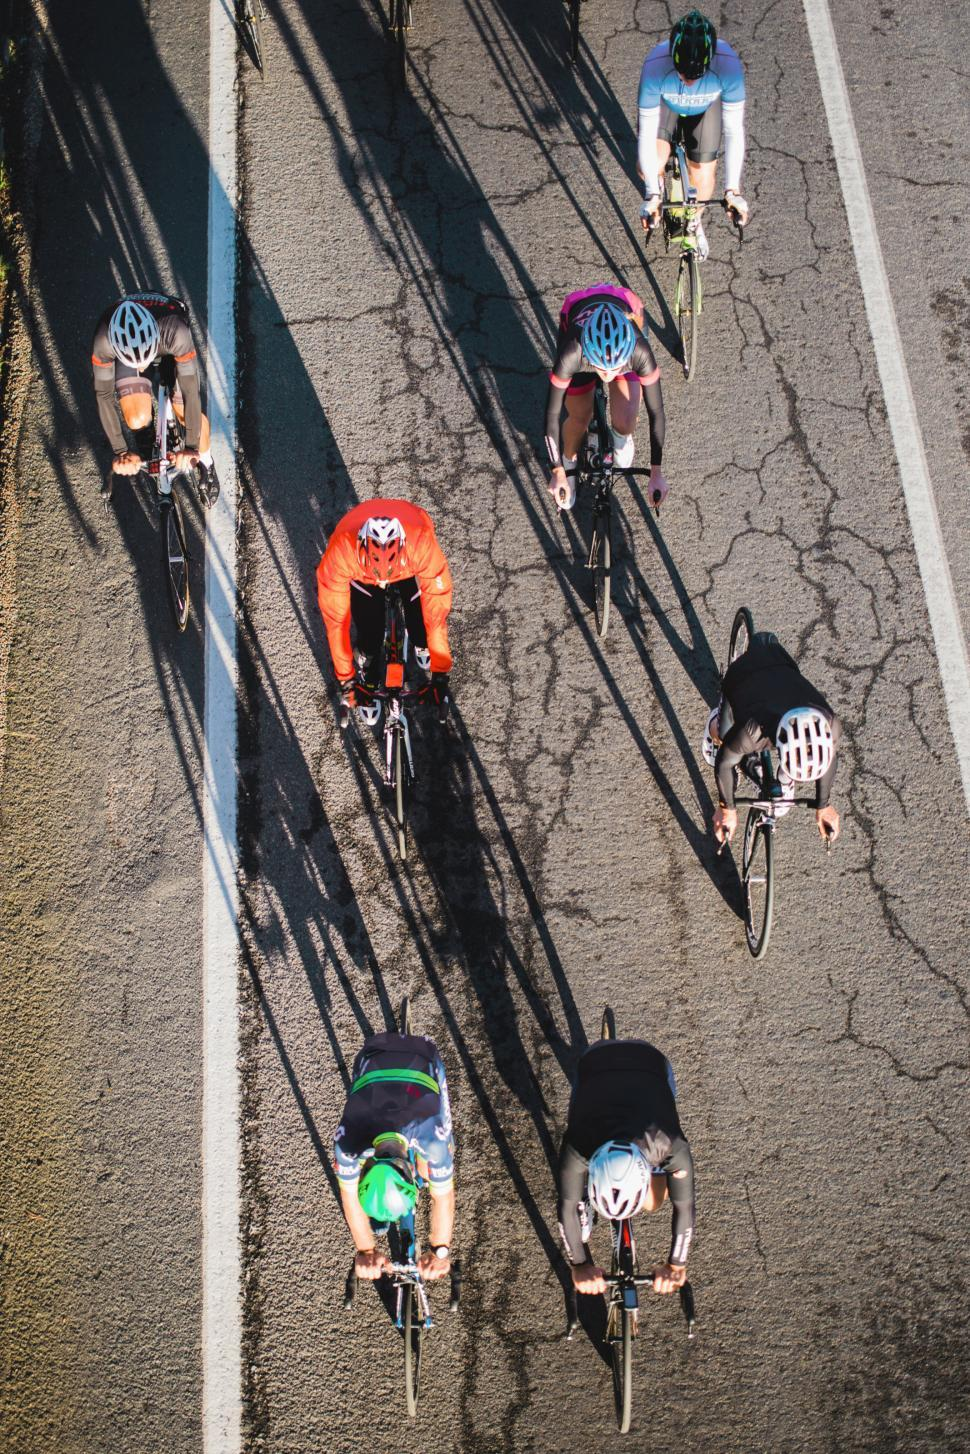 Download Free Stock Photo of Bicycle race view from above